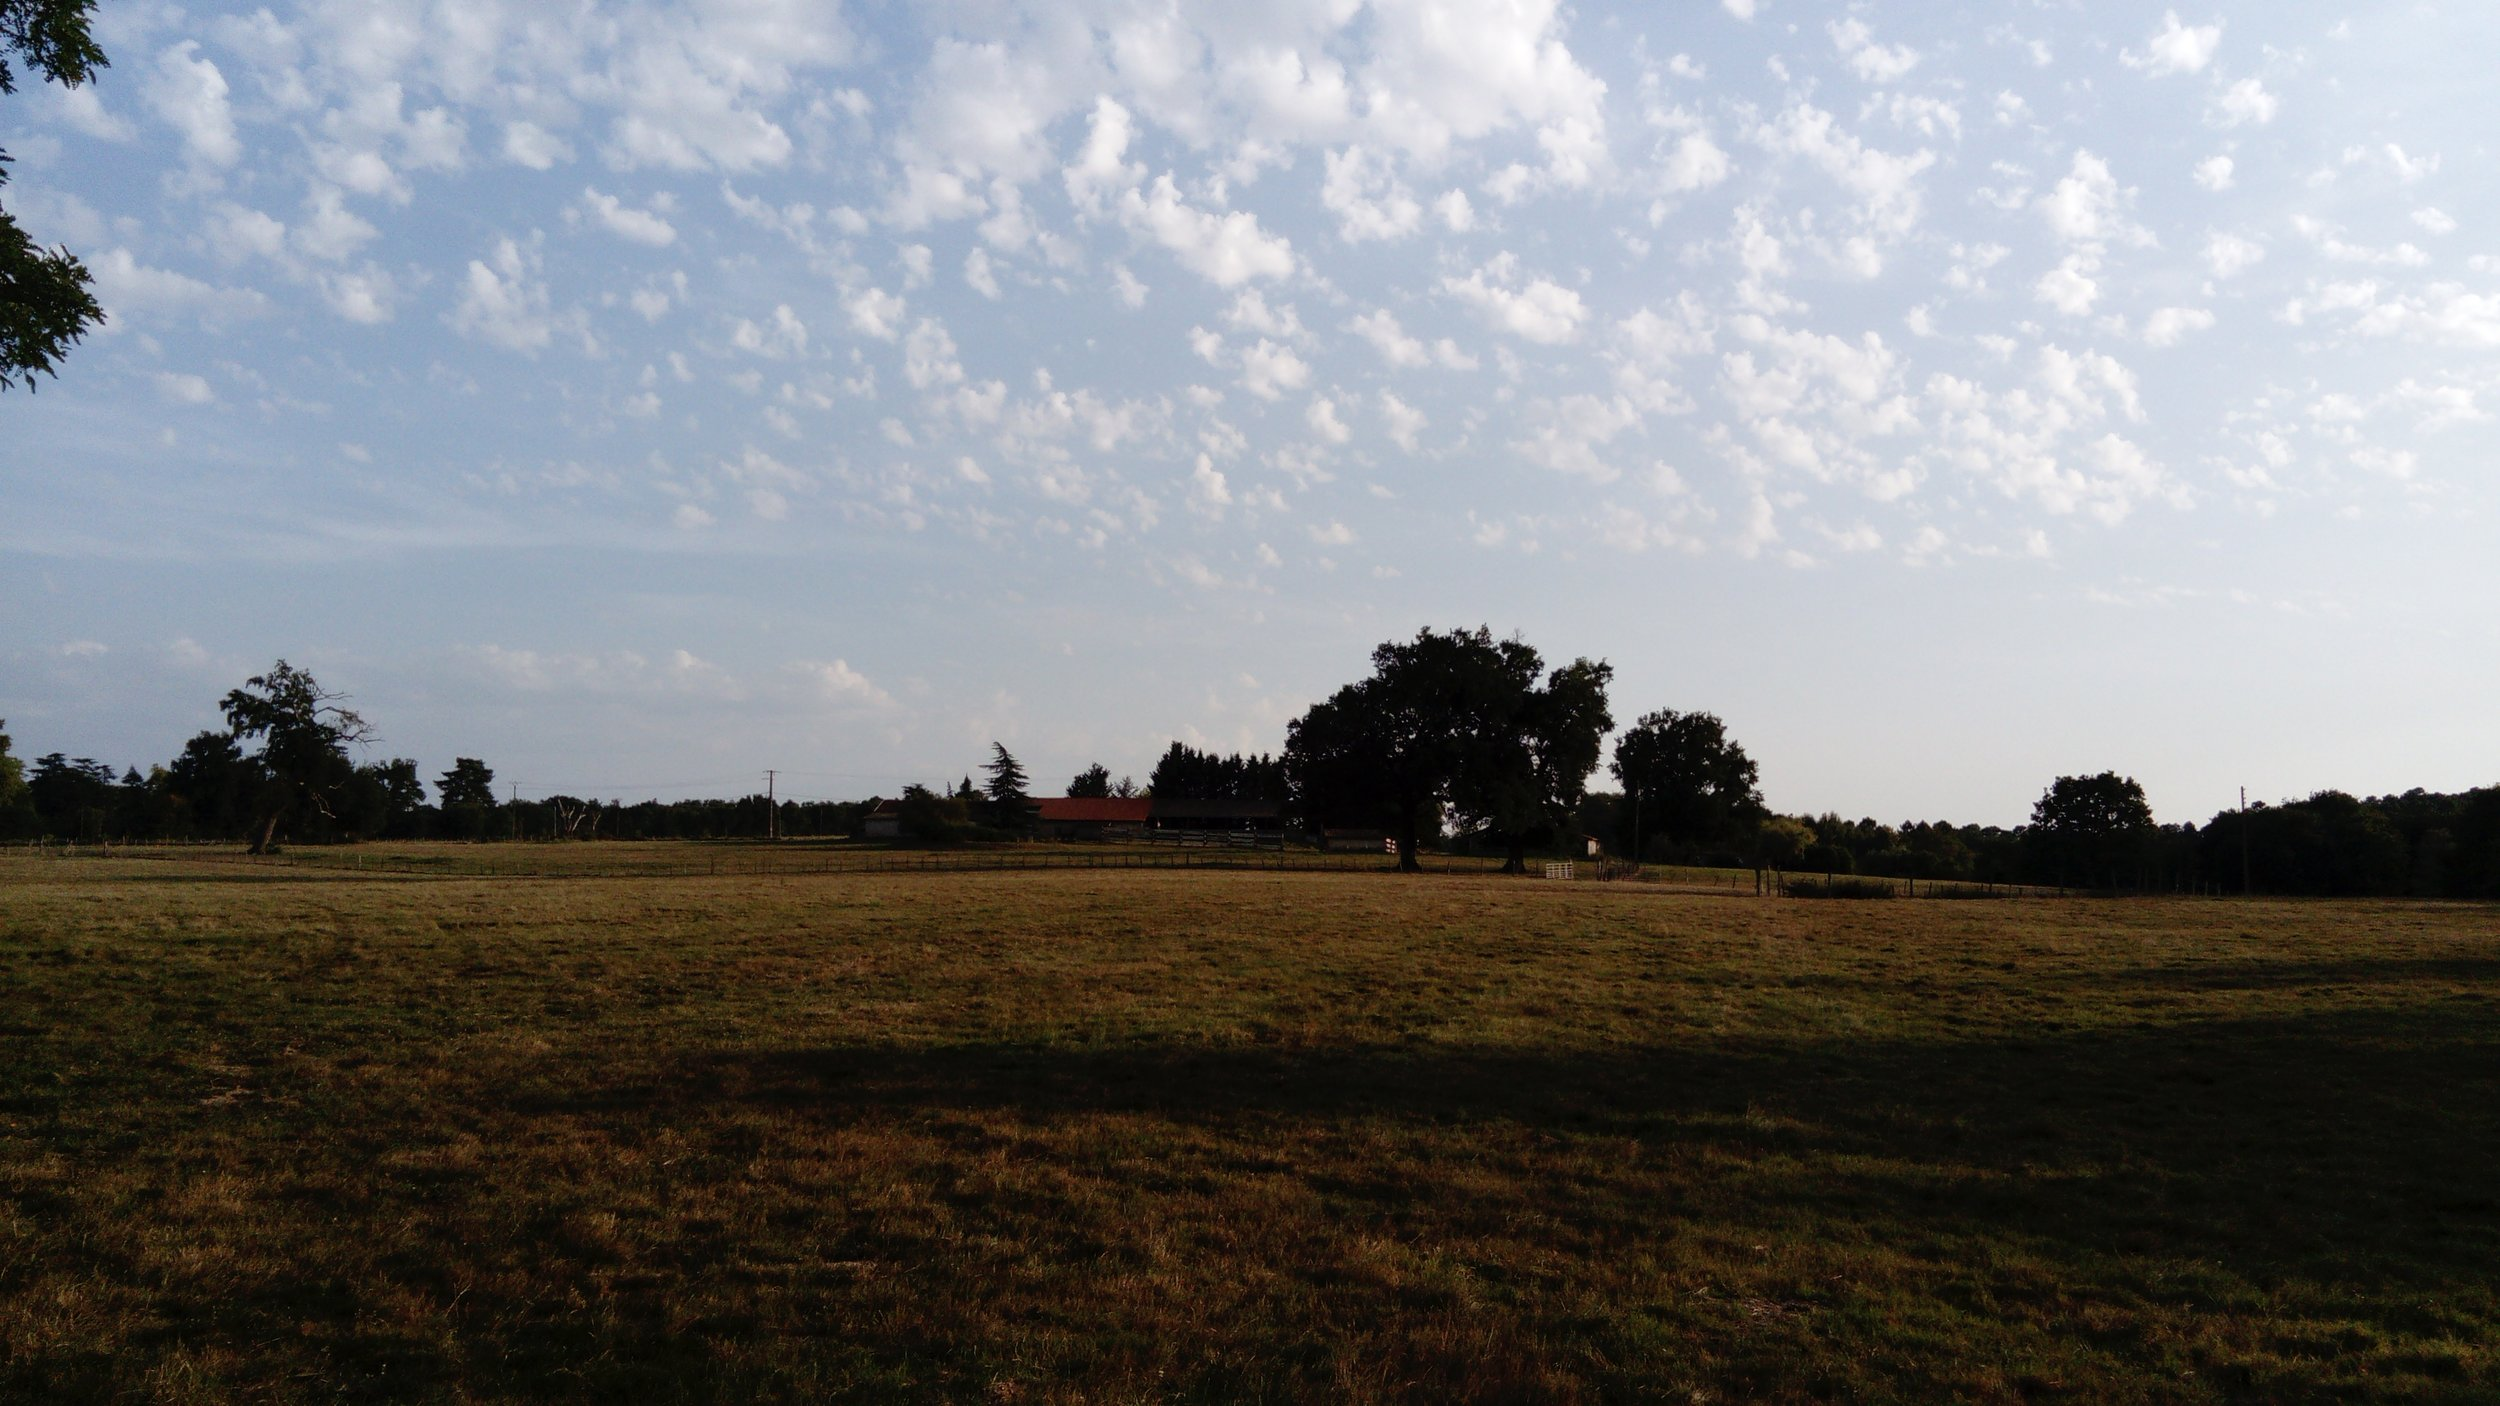 Pasture land, some of which is now an orchard